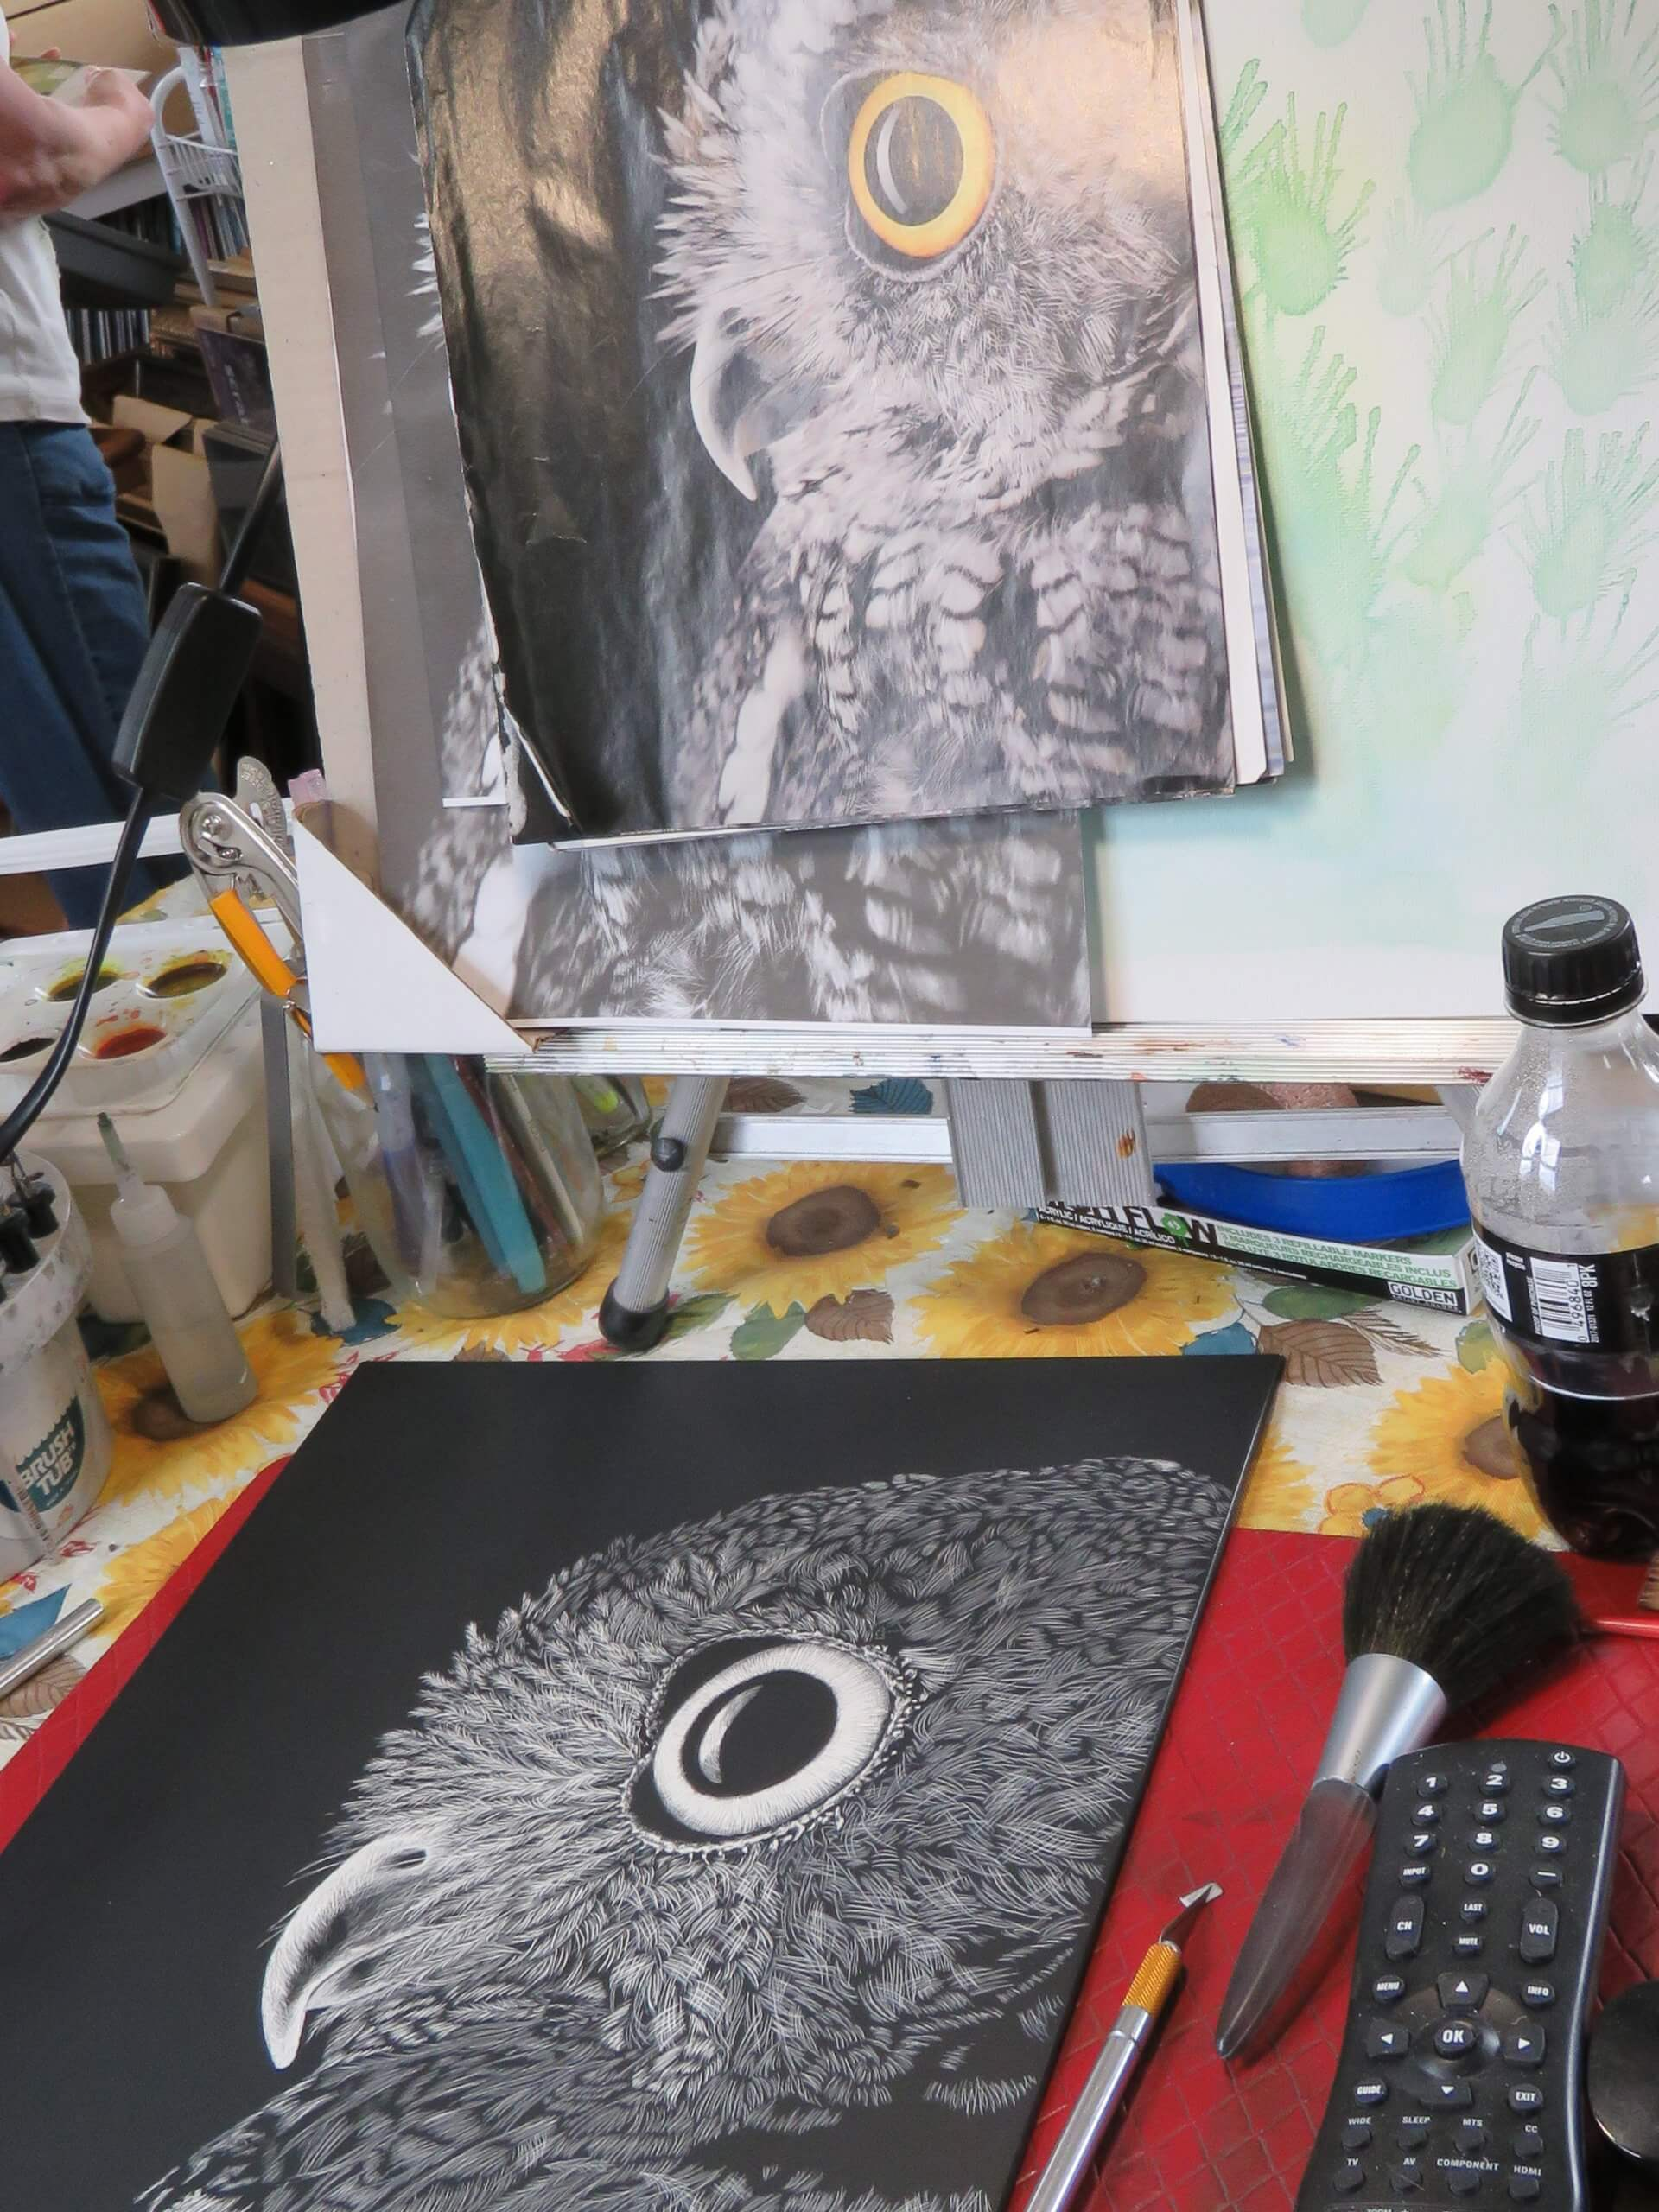 Owl scratch art in progress by Esther Piazza Doyle